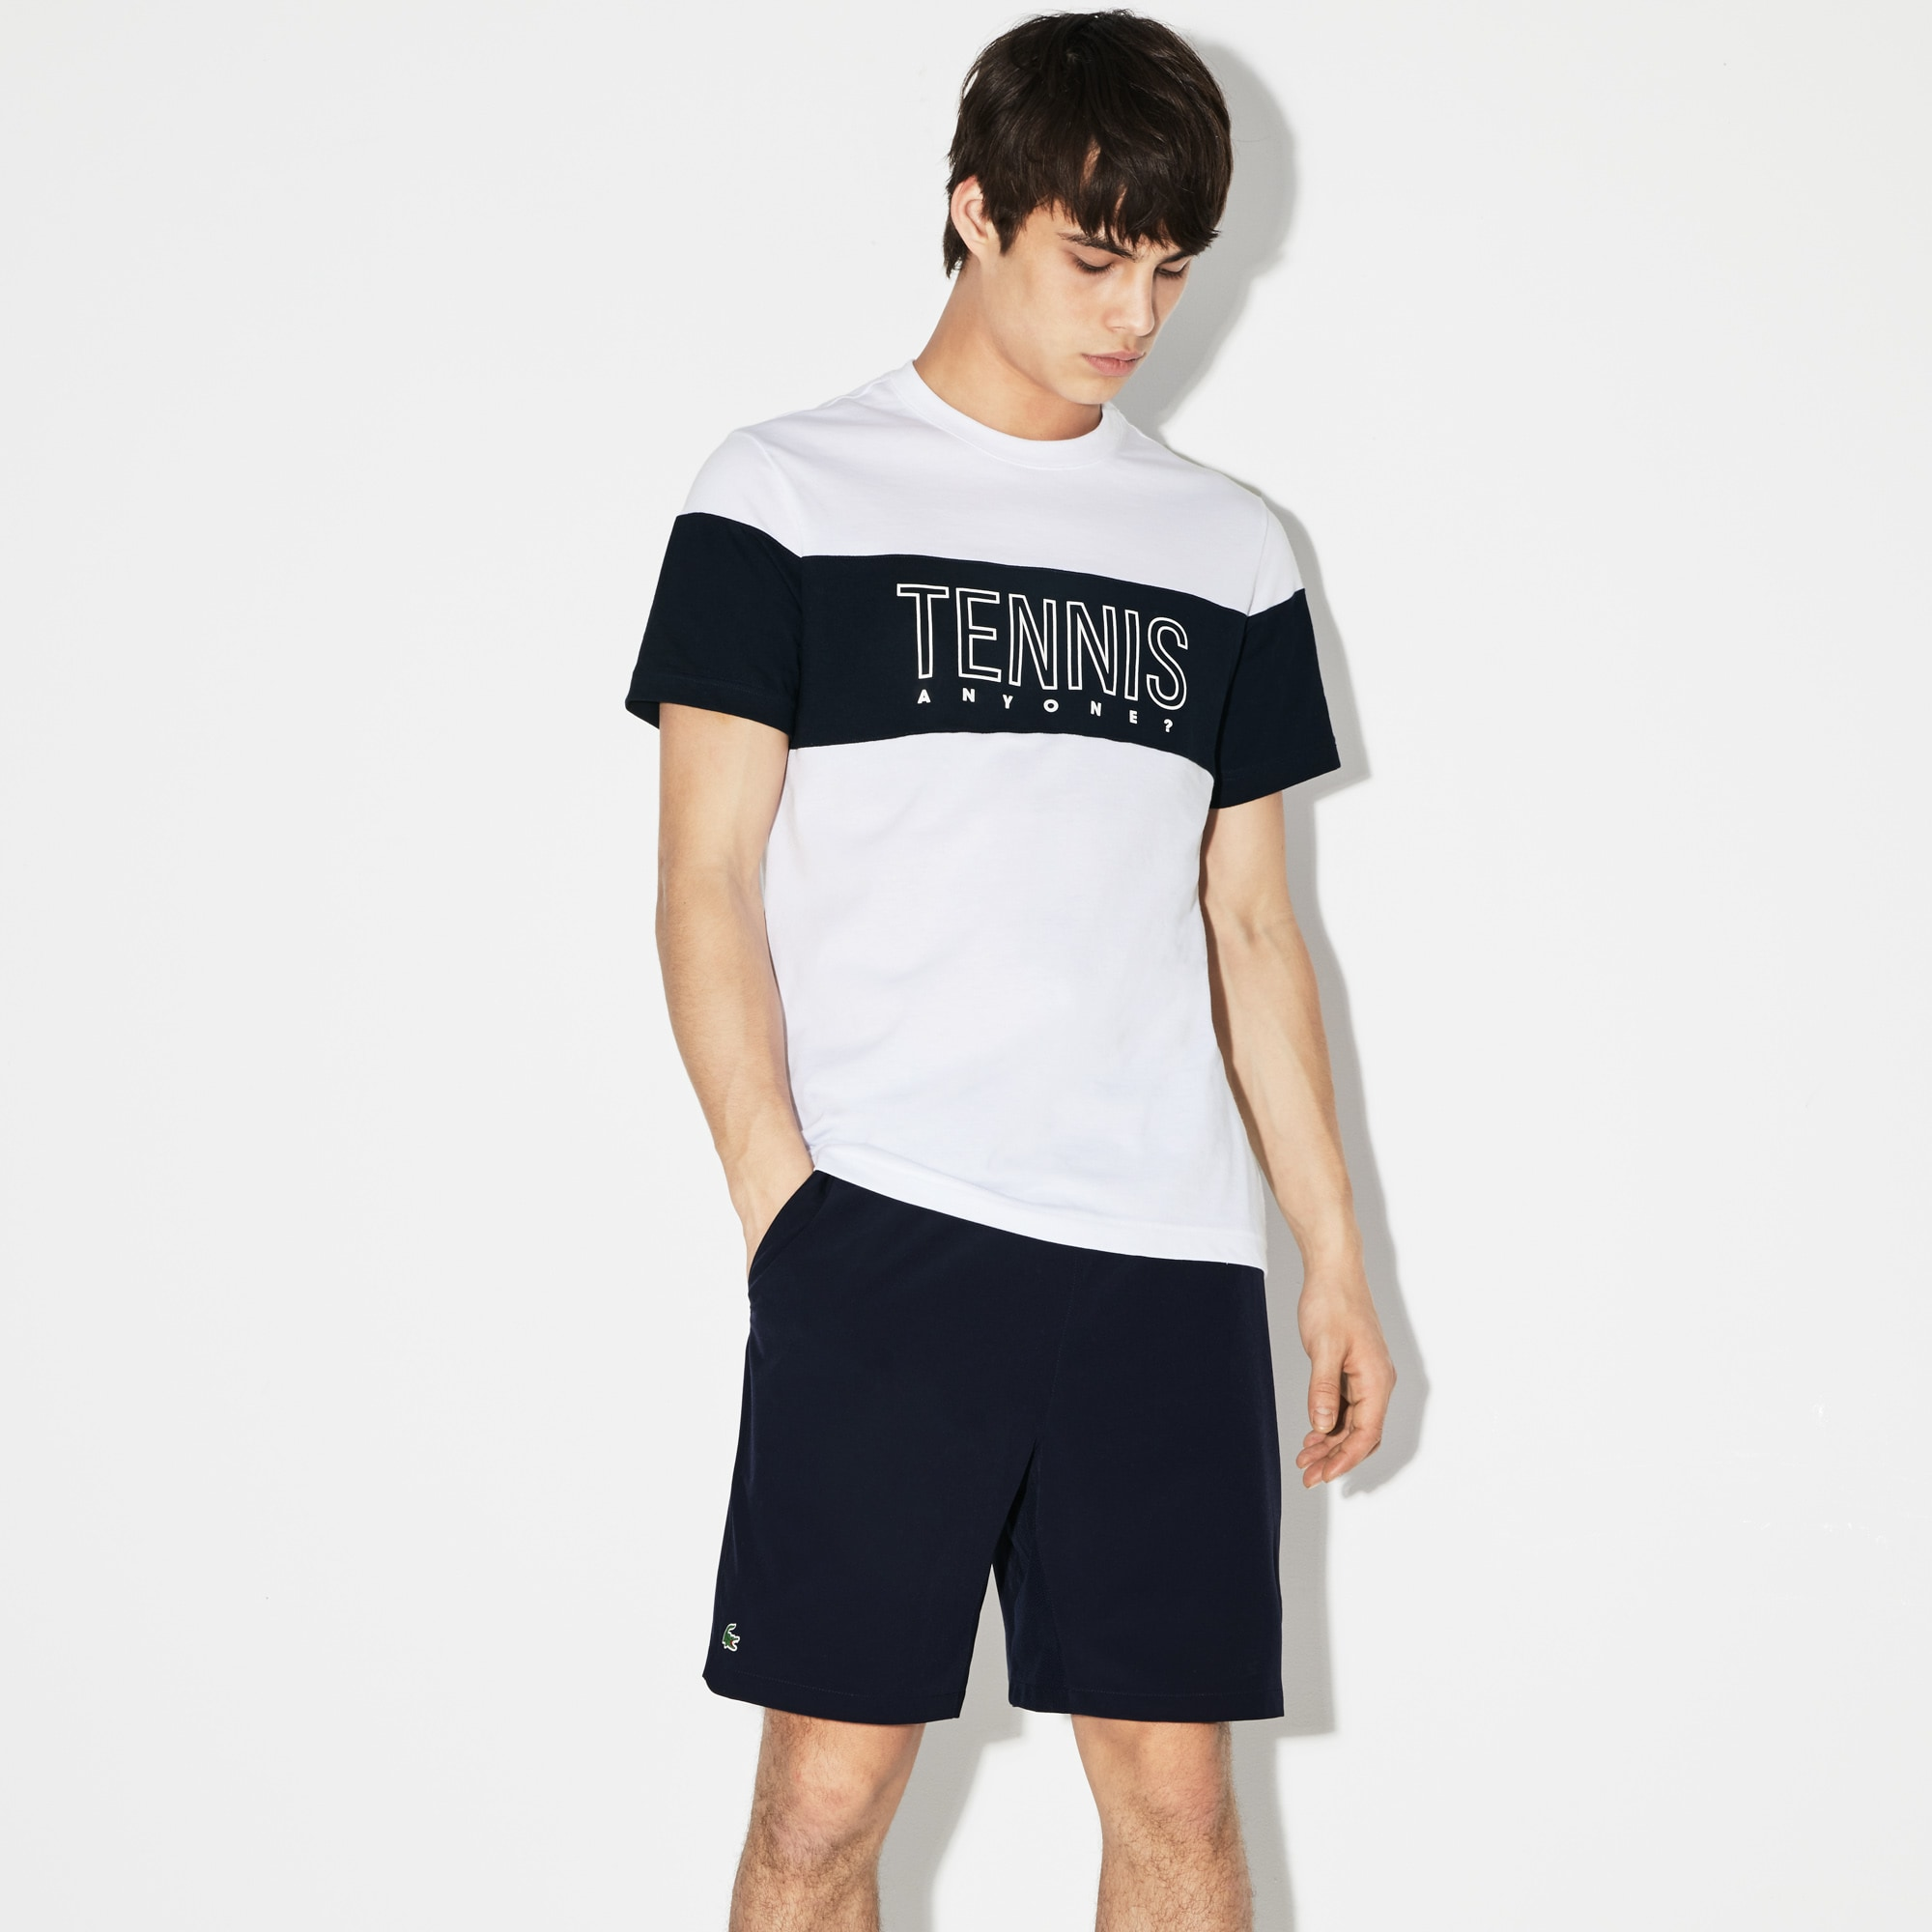 Men's Lacoste SPORT Roland Garros Edition Technical Jersey T-shirt